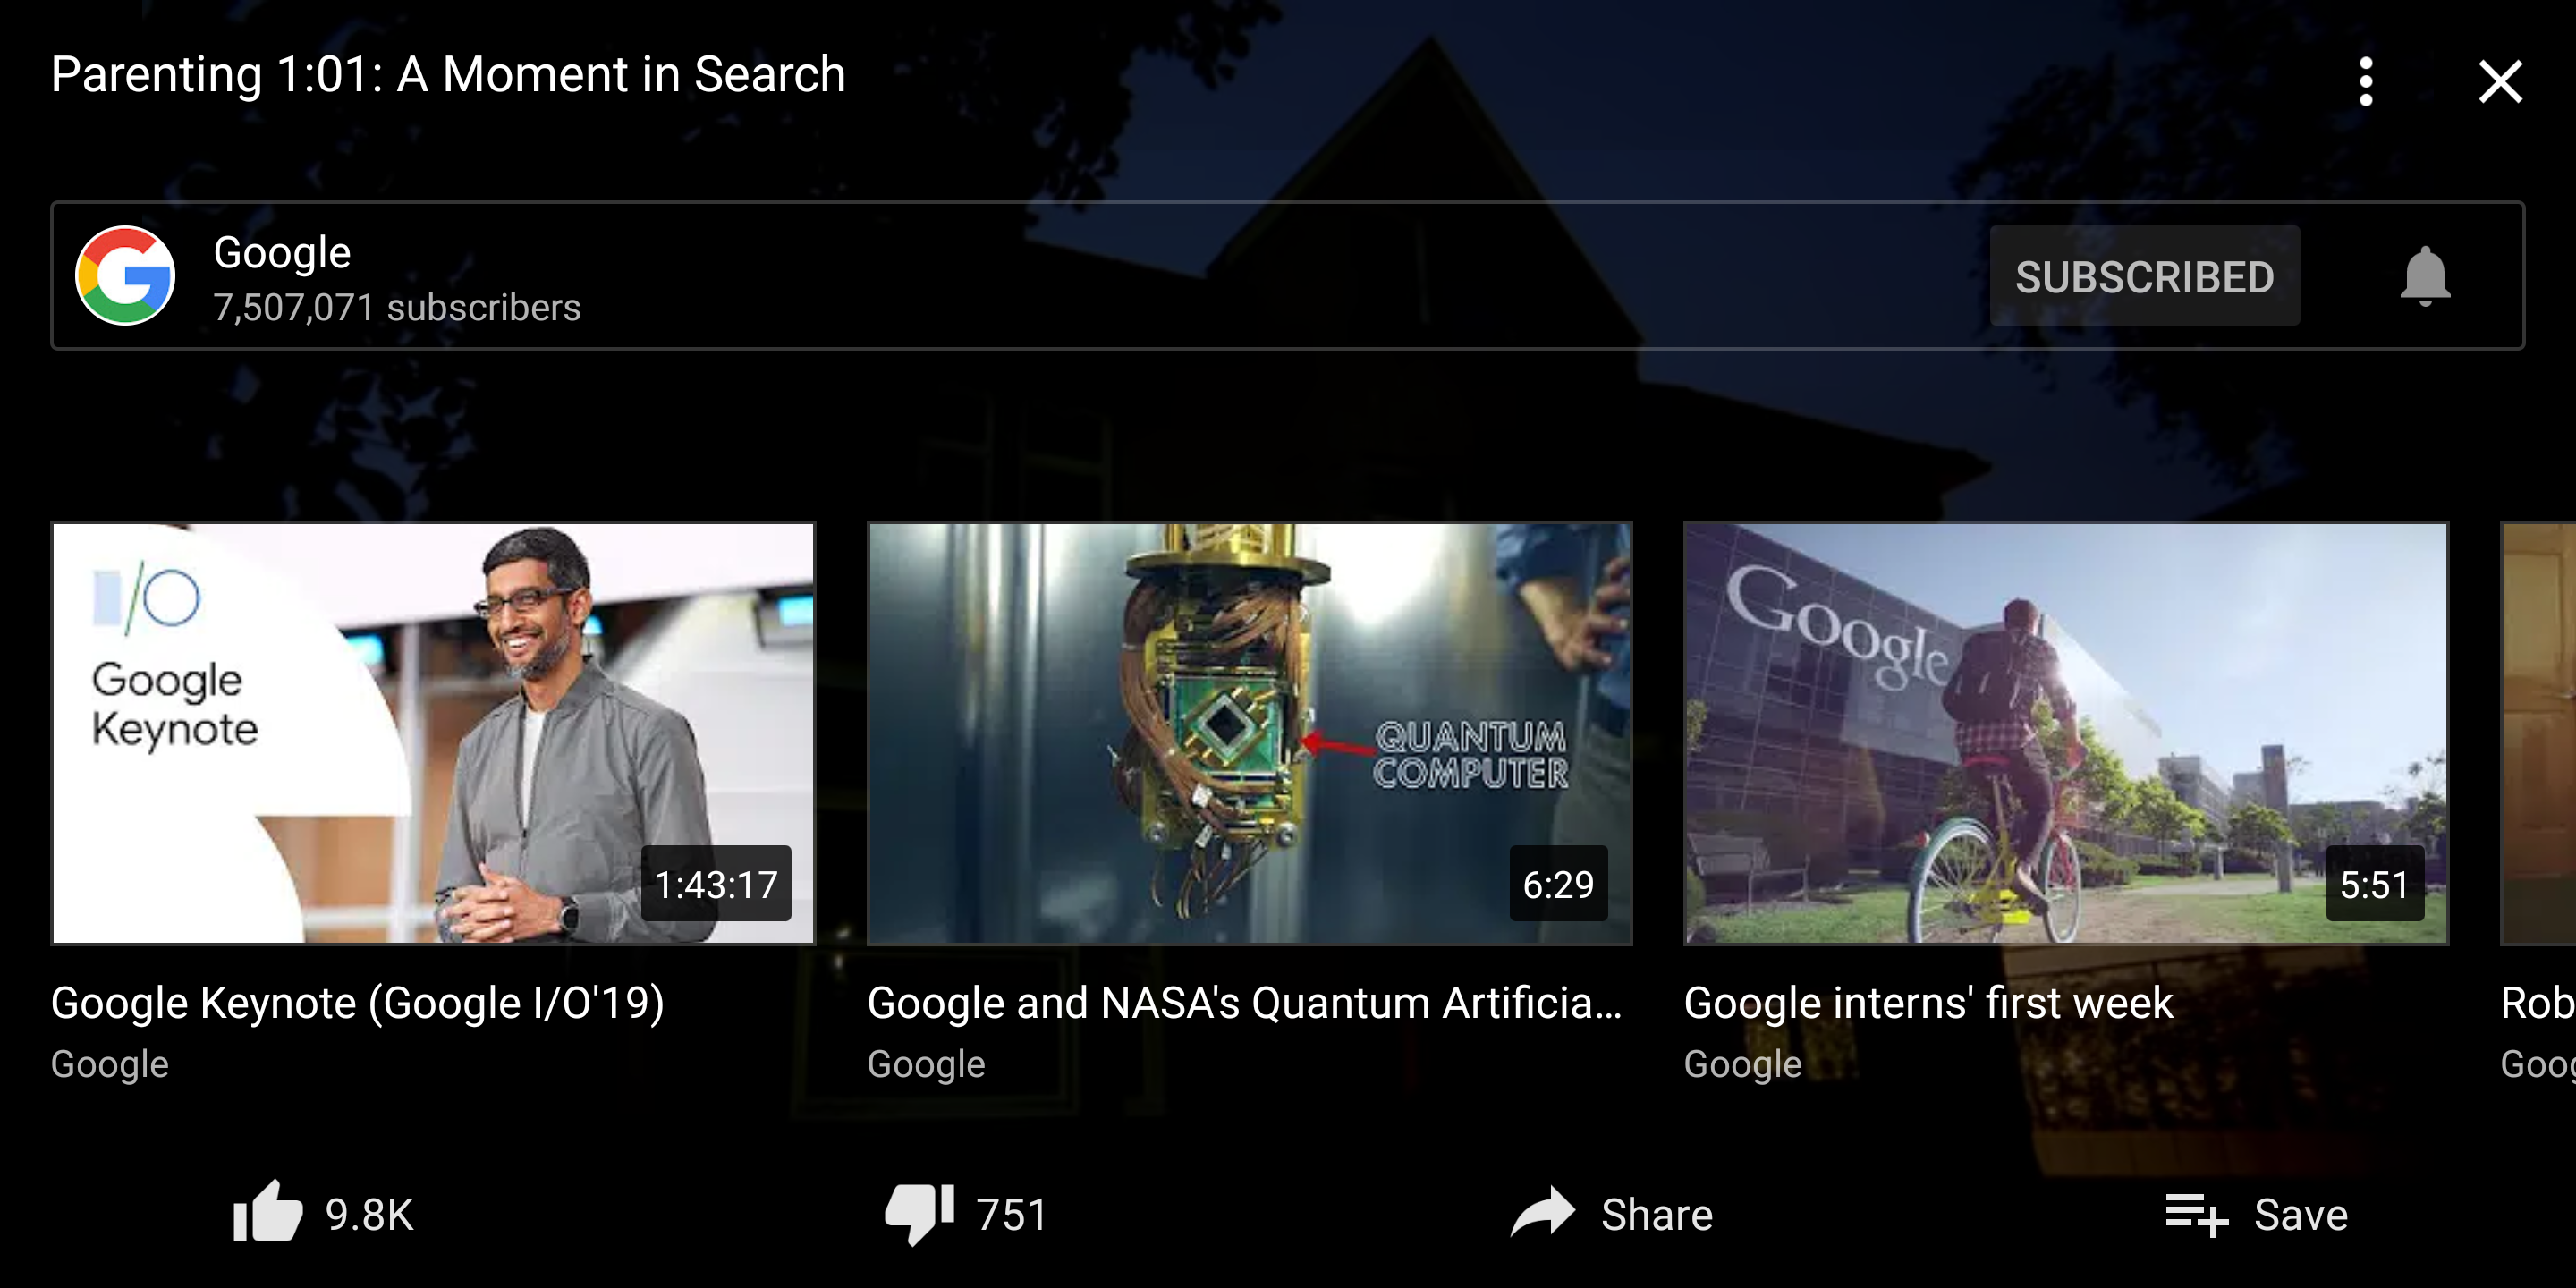 YouTube improves fullscreen playback UI with quick access to video and channel actions